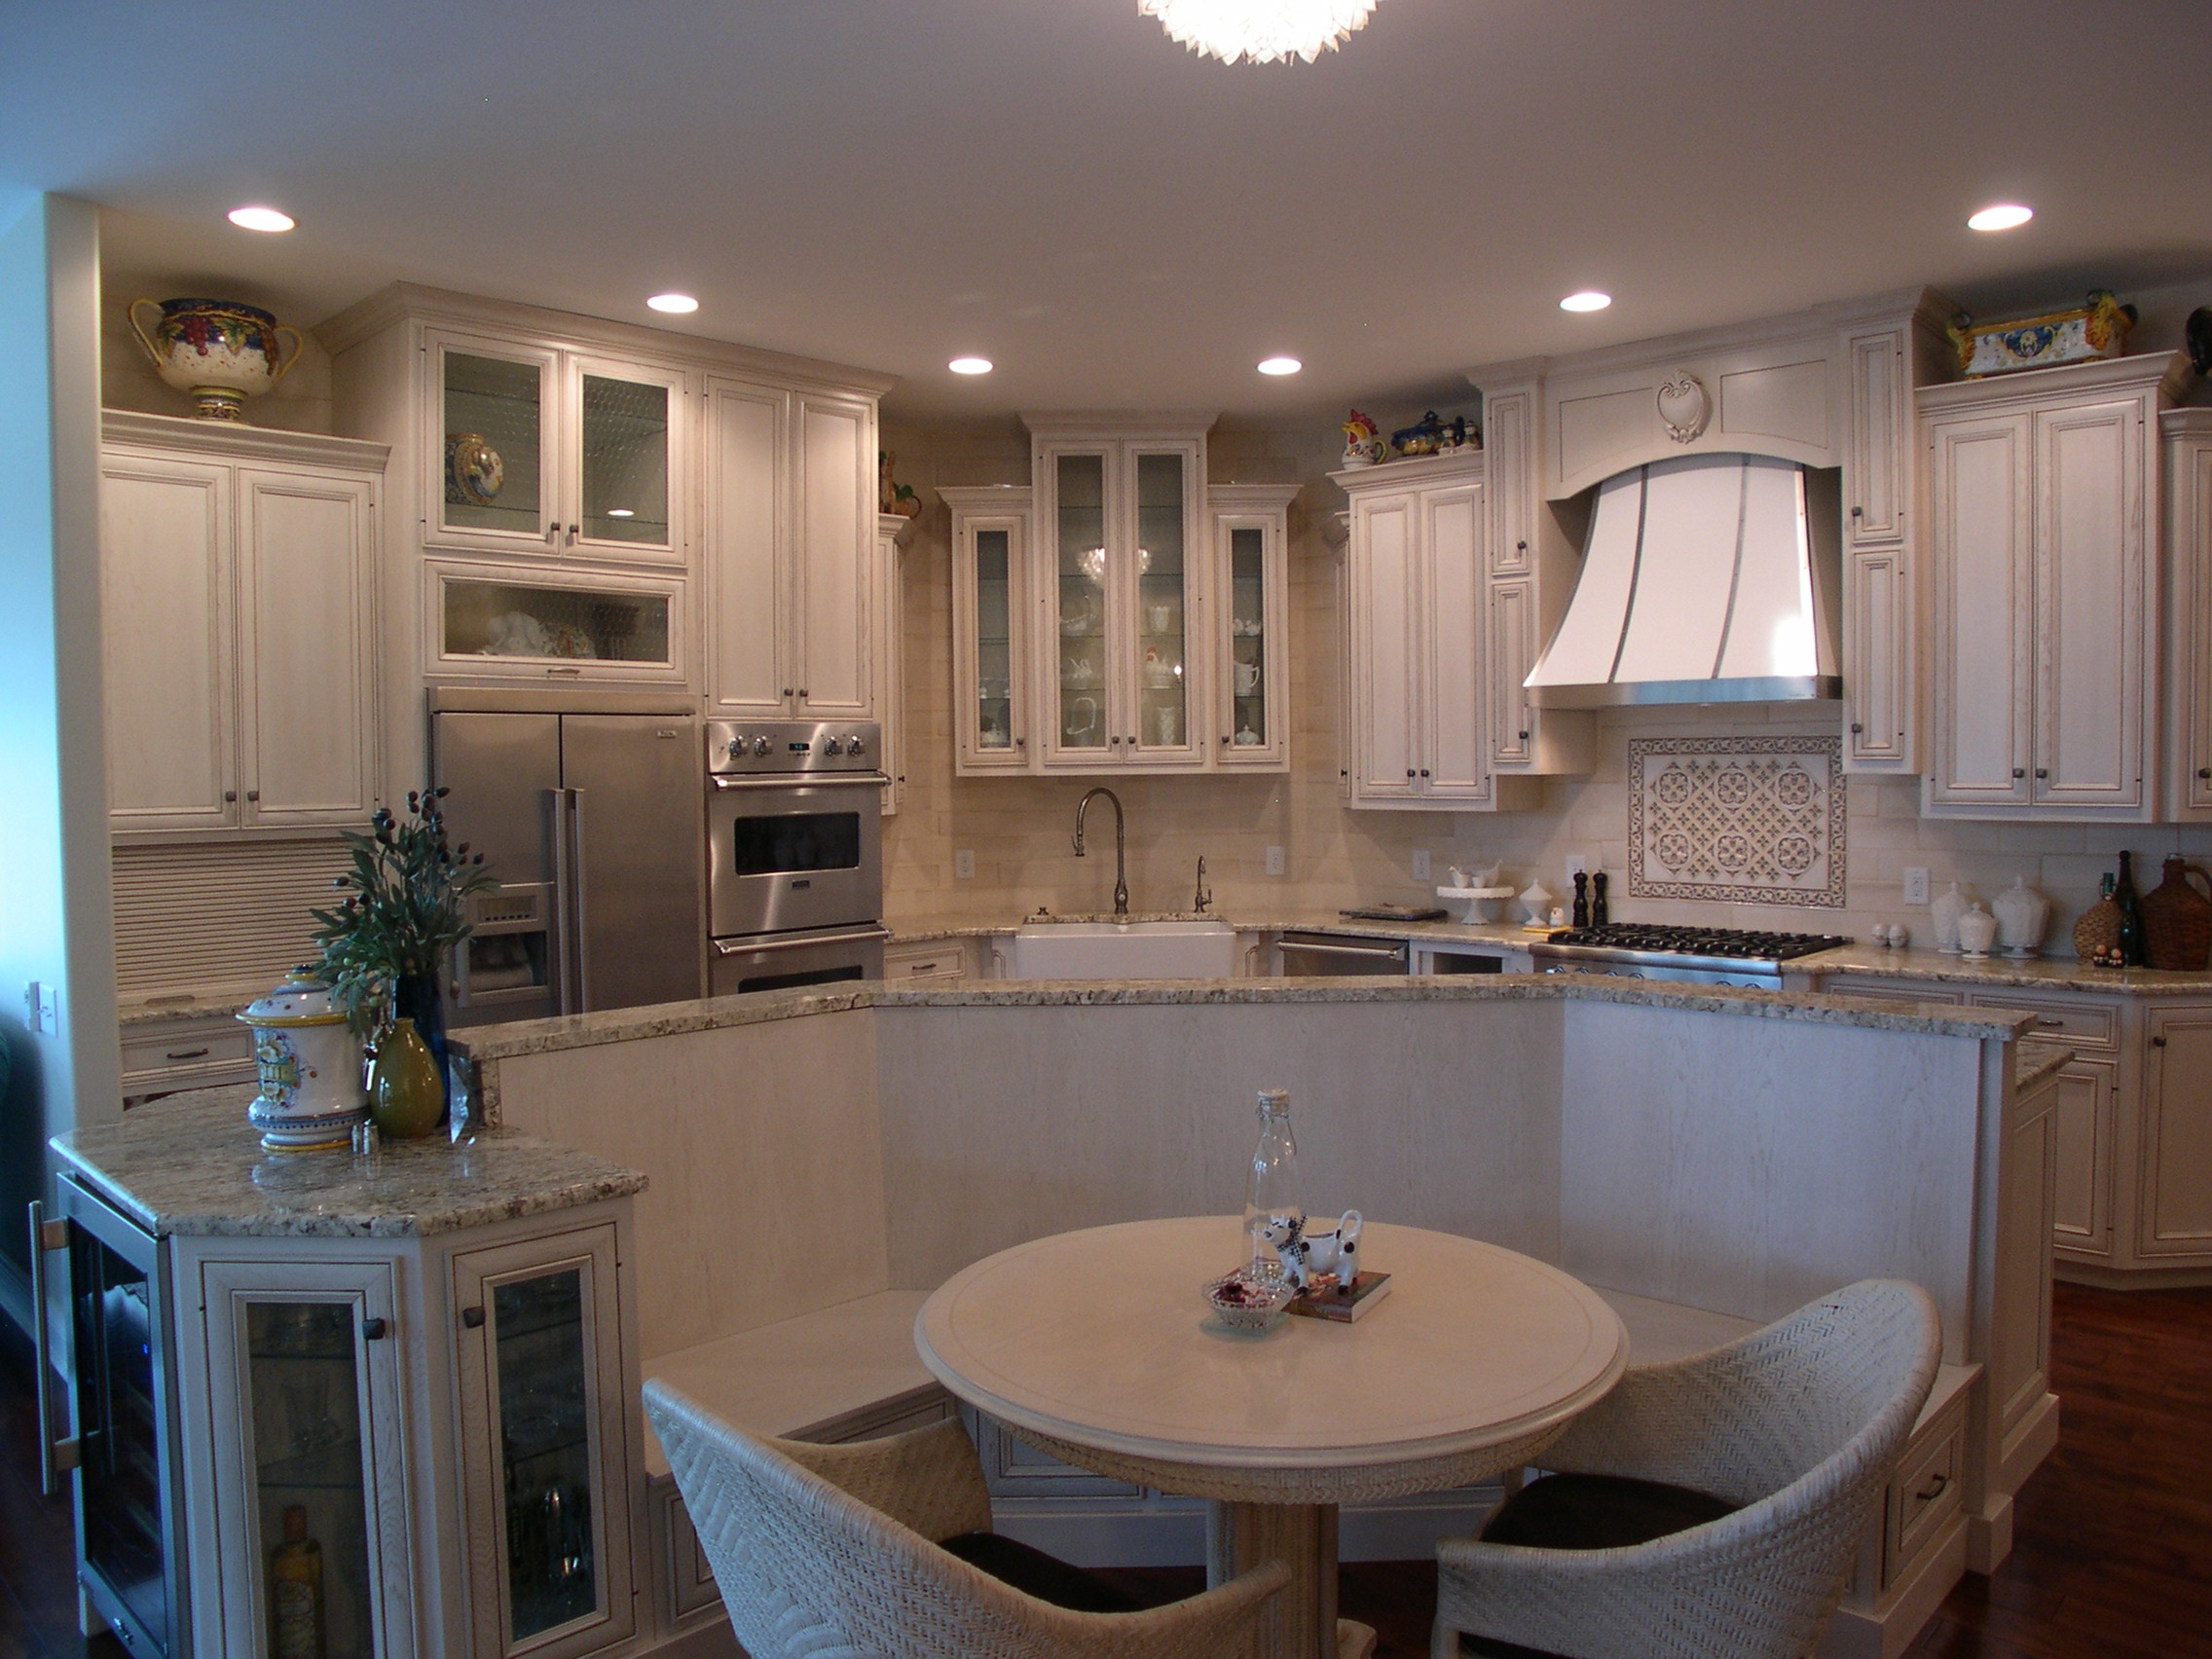 Kitchen - The heart of the home. This is where life happens and cabinets need to be at their best.